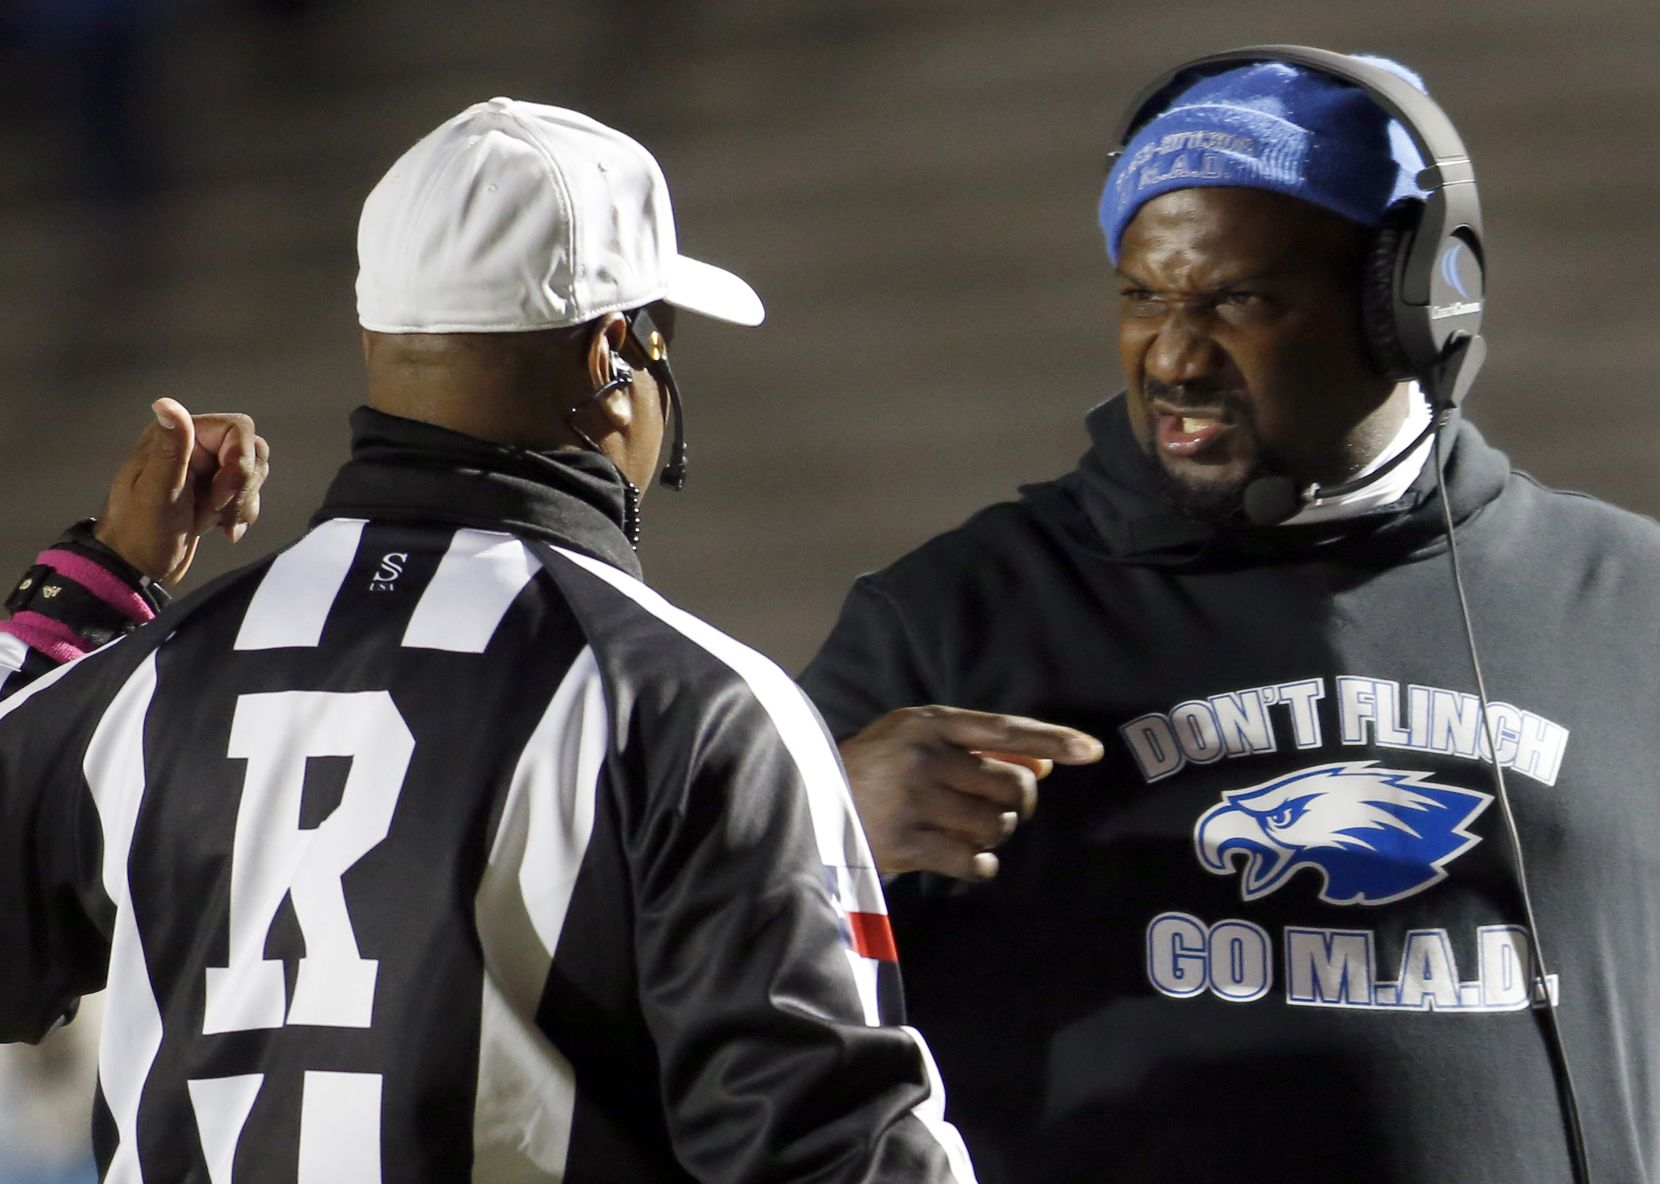 Wilmer Hutchins head coach Elzie Barnett reacts from a game official's call during first half action against Dallas Carter. The two teams played their District 8-4A Division 1 football game at Wilmer Hutchins High School Stadium in Dallas on October 23, 2020. (Steve Hamm/ Special Contributor)